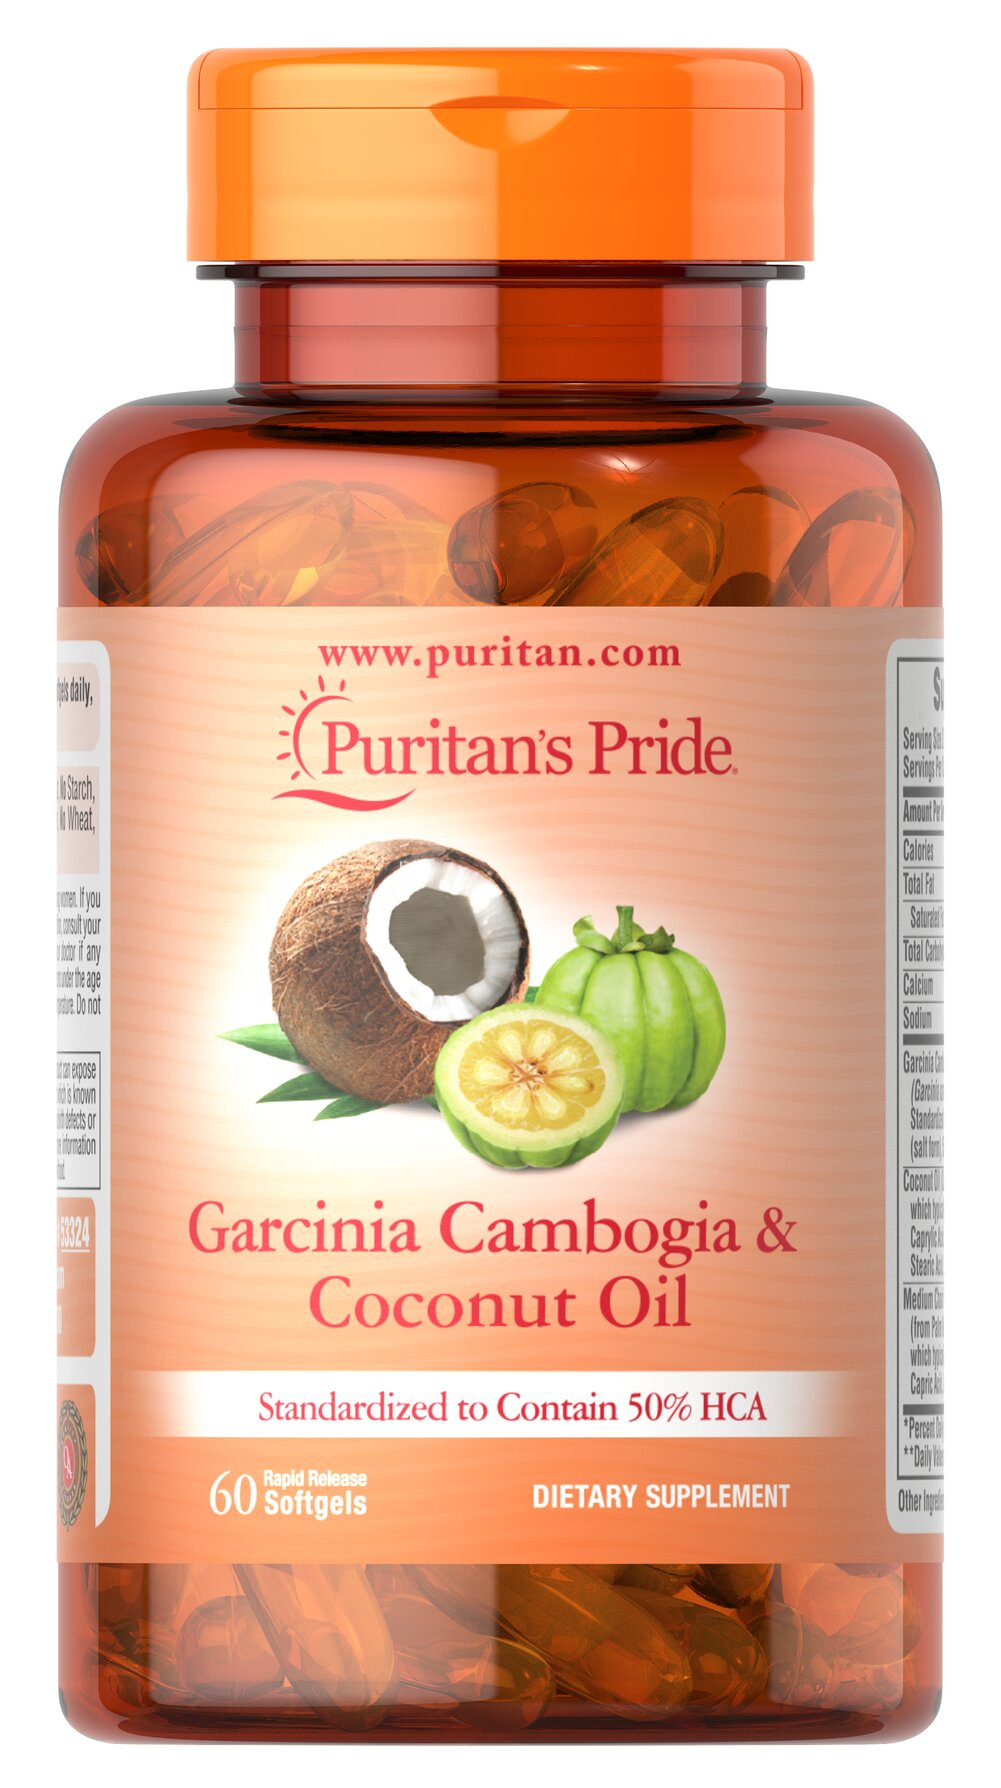 "Garcinia Cambogia 500 mg plus Coconut Oil 500mg <p>Garcinia Cambogia is related to the superfruit Mangosteen and is sometimes called tamarind, brindleberry or camboge. Garcinia Cambogia has been used in Ayurvedic practices for hundreds of years. <br /></p><p>The rind of this fruit contains the revolutionary ingredient Hydroxycitric Acid (HCA), which is considered the ""active compound"". These capsules contain a standardized supplement to provide 500 mg of HCA per serving."